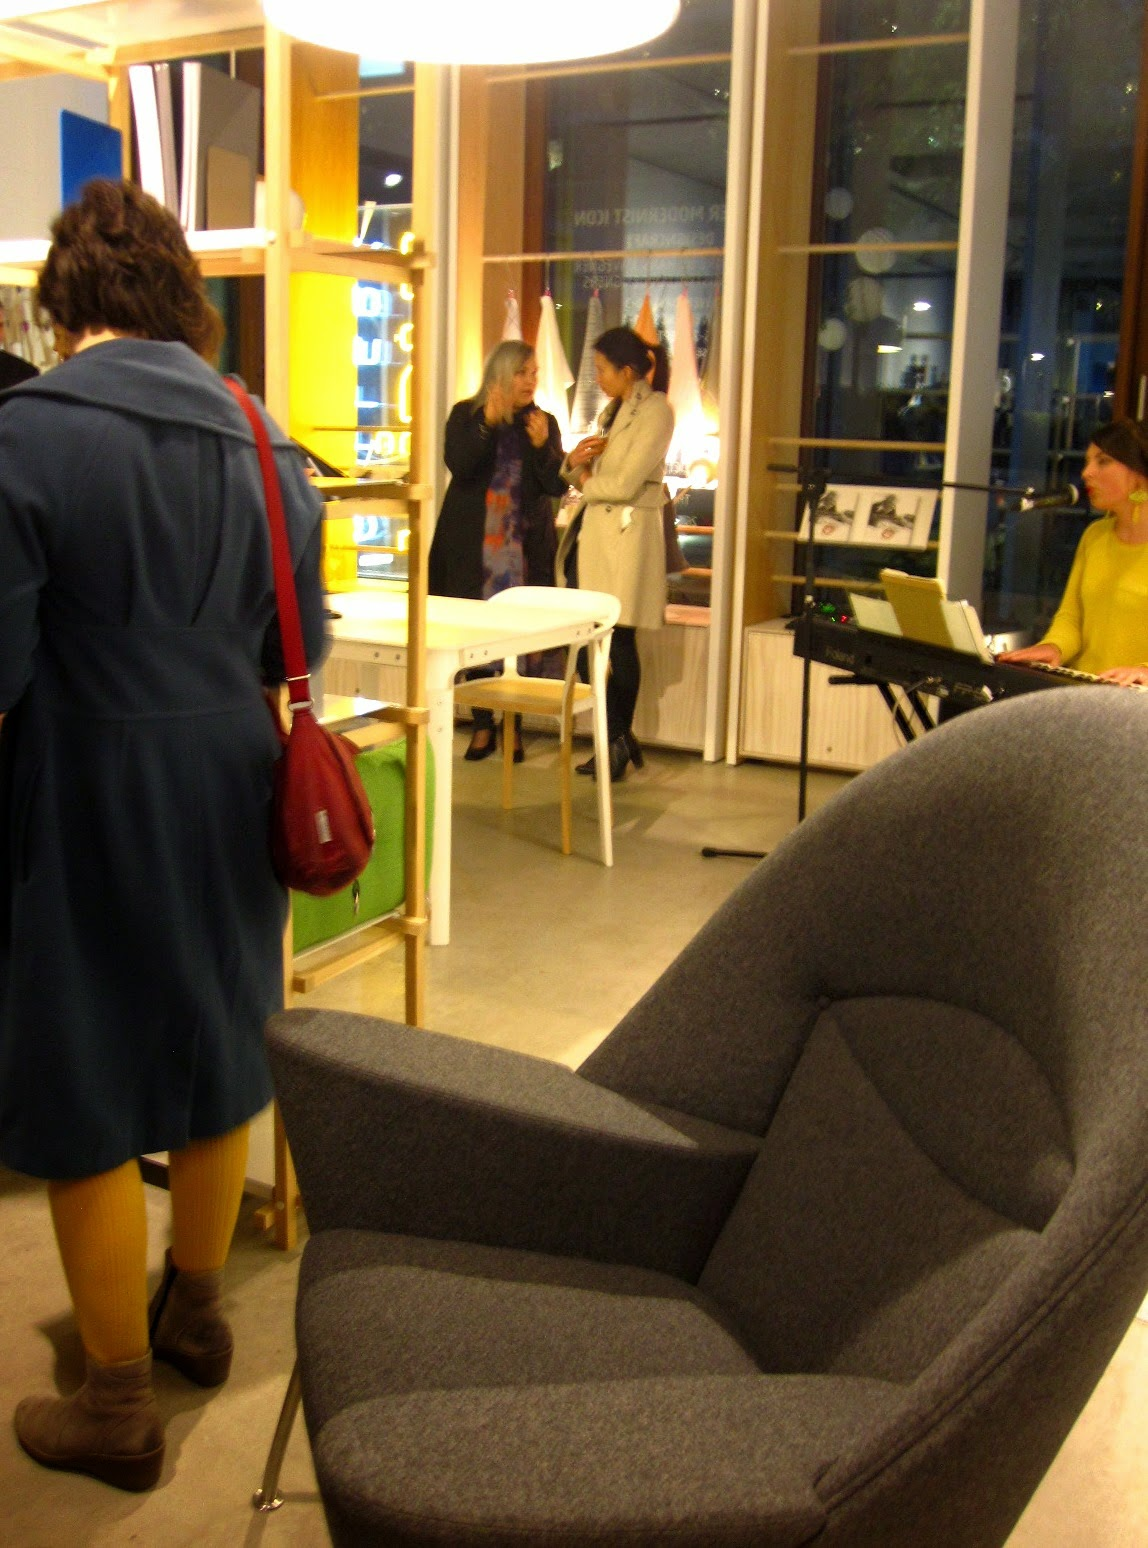 An exhibition space with an armchair and table and chair on display. A musician sings and plays keyboard in the corner.